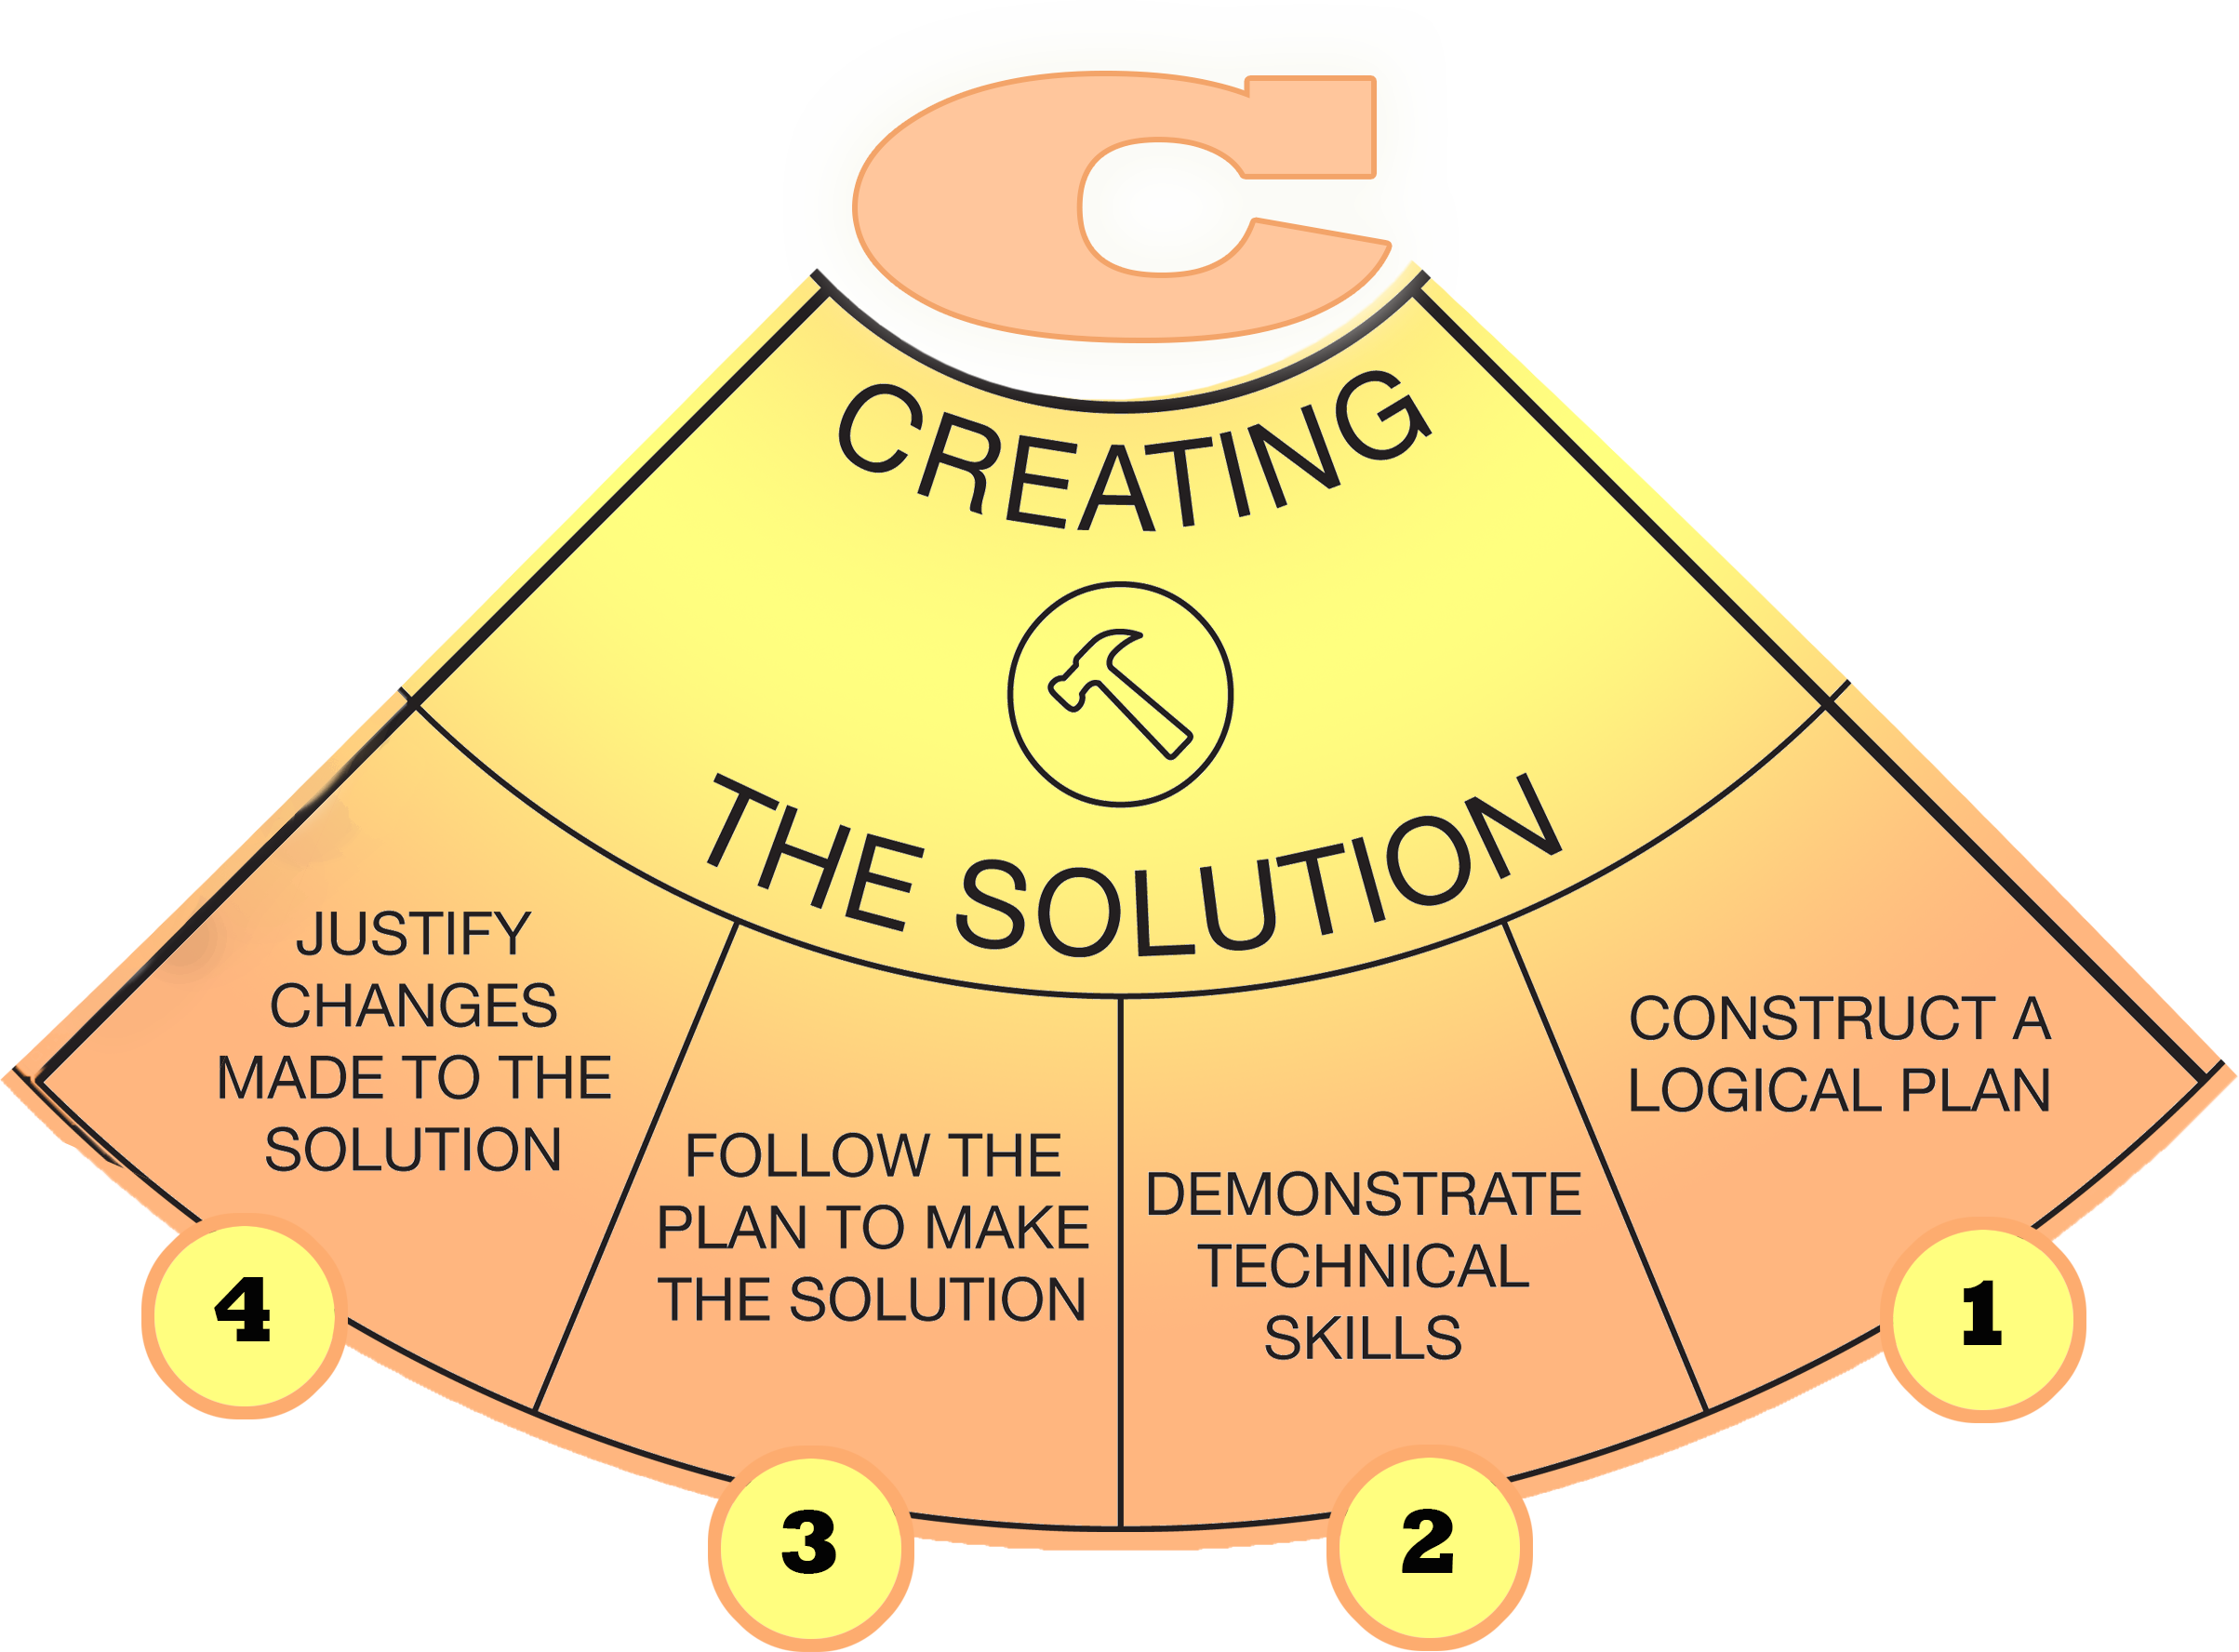 creating_the_solution-1